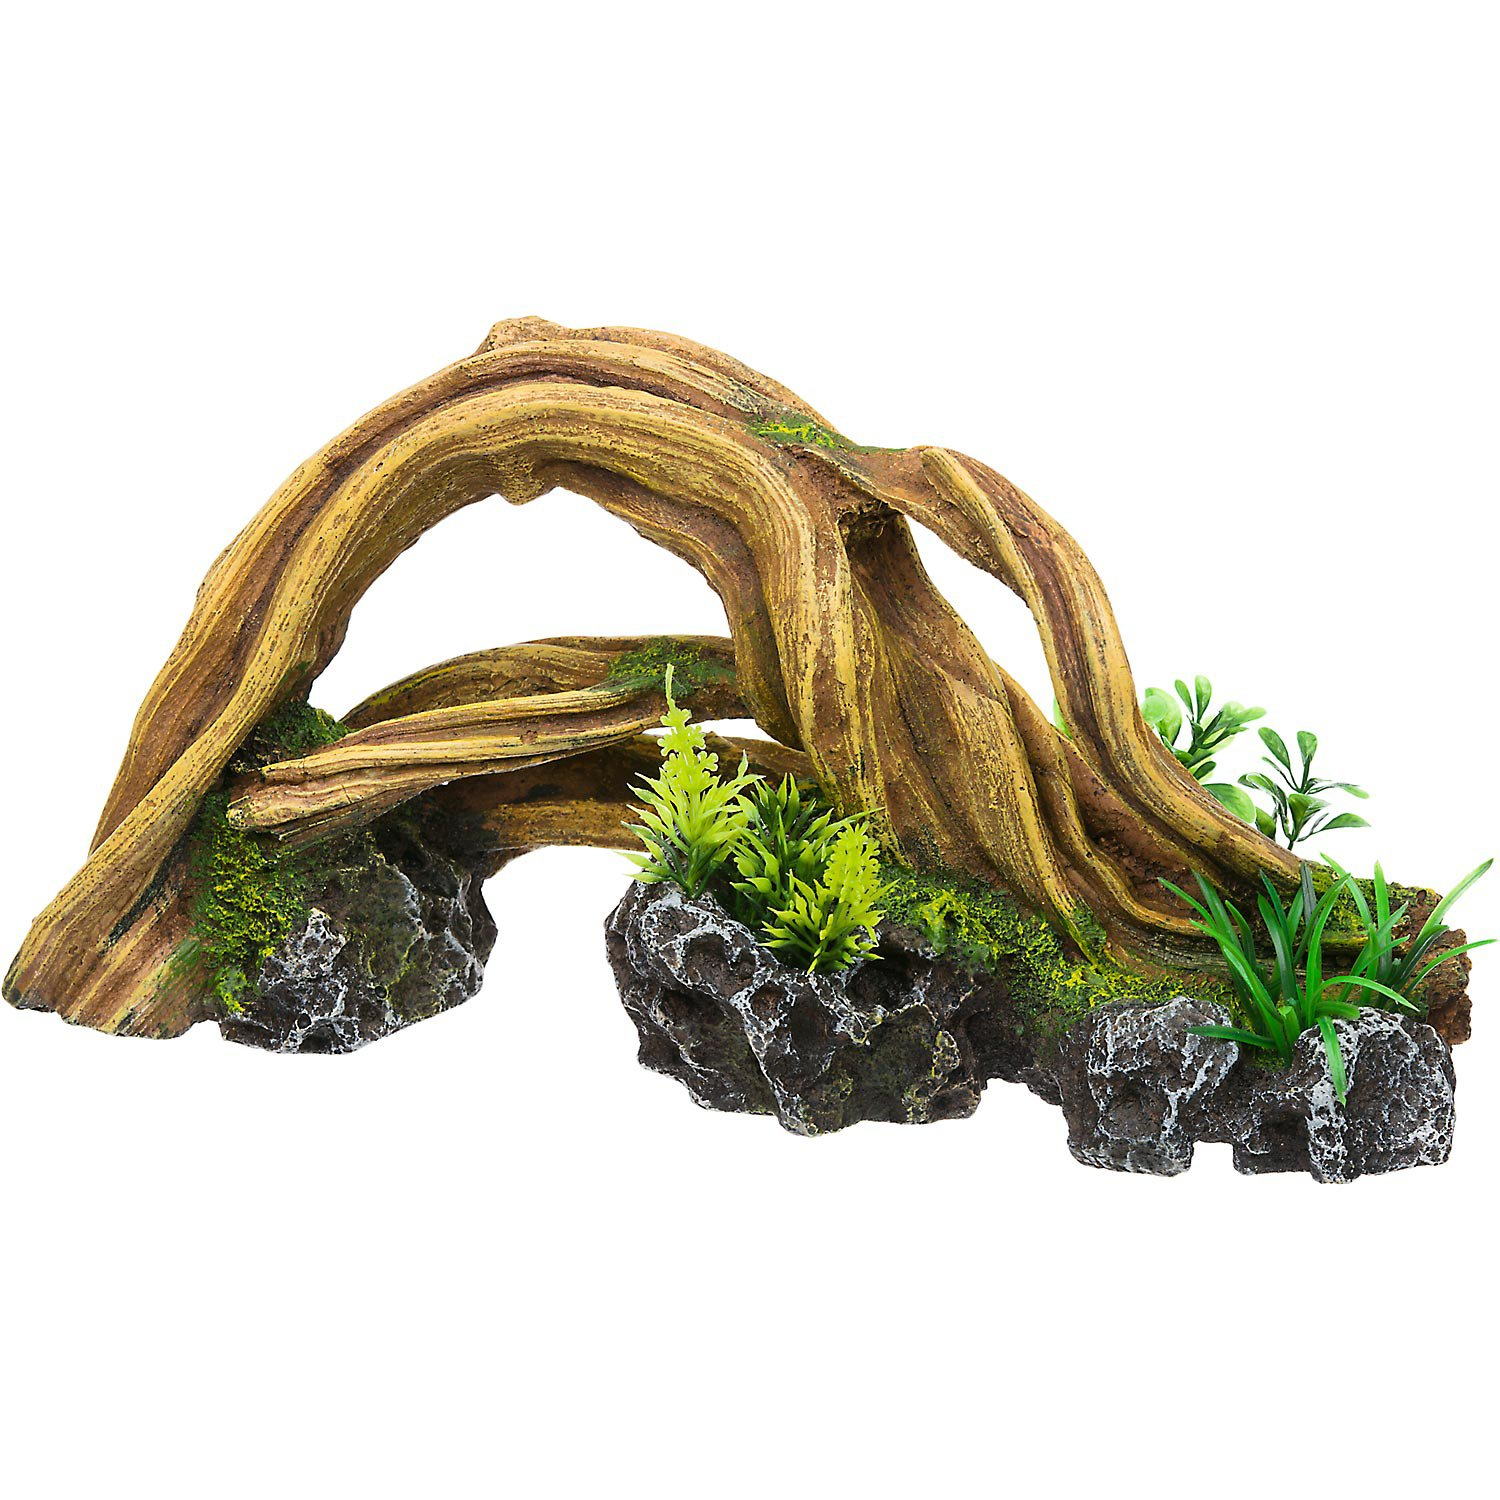 Rockgarden resin wood arch with plants petco for Petco fish prices